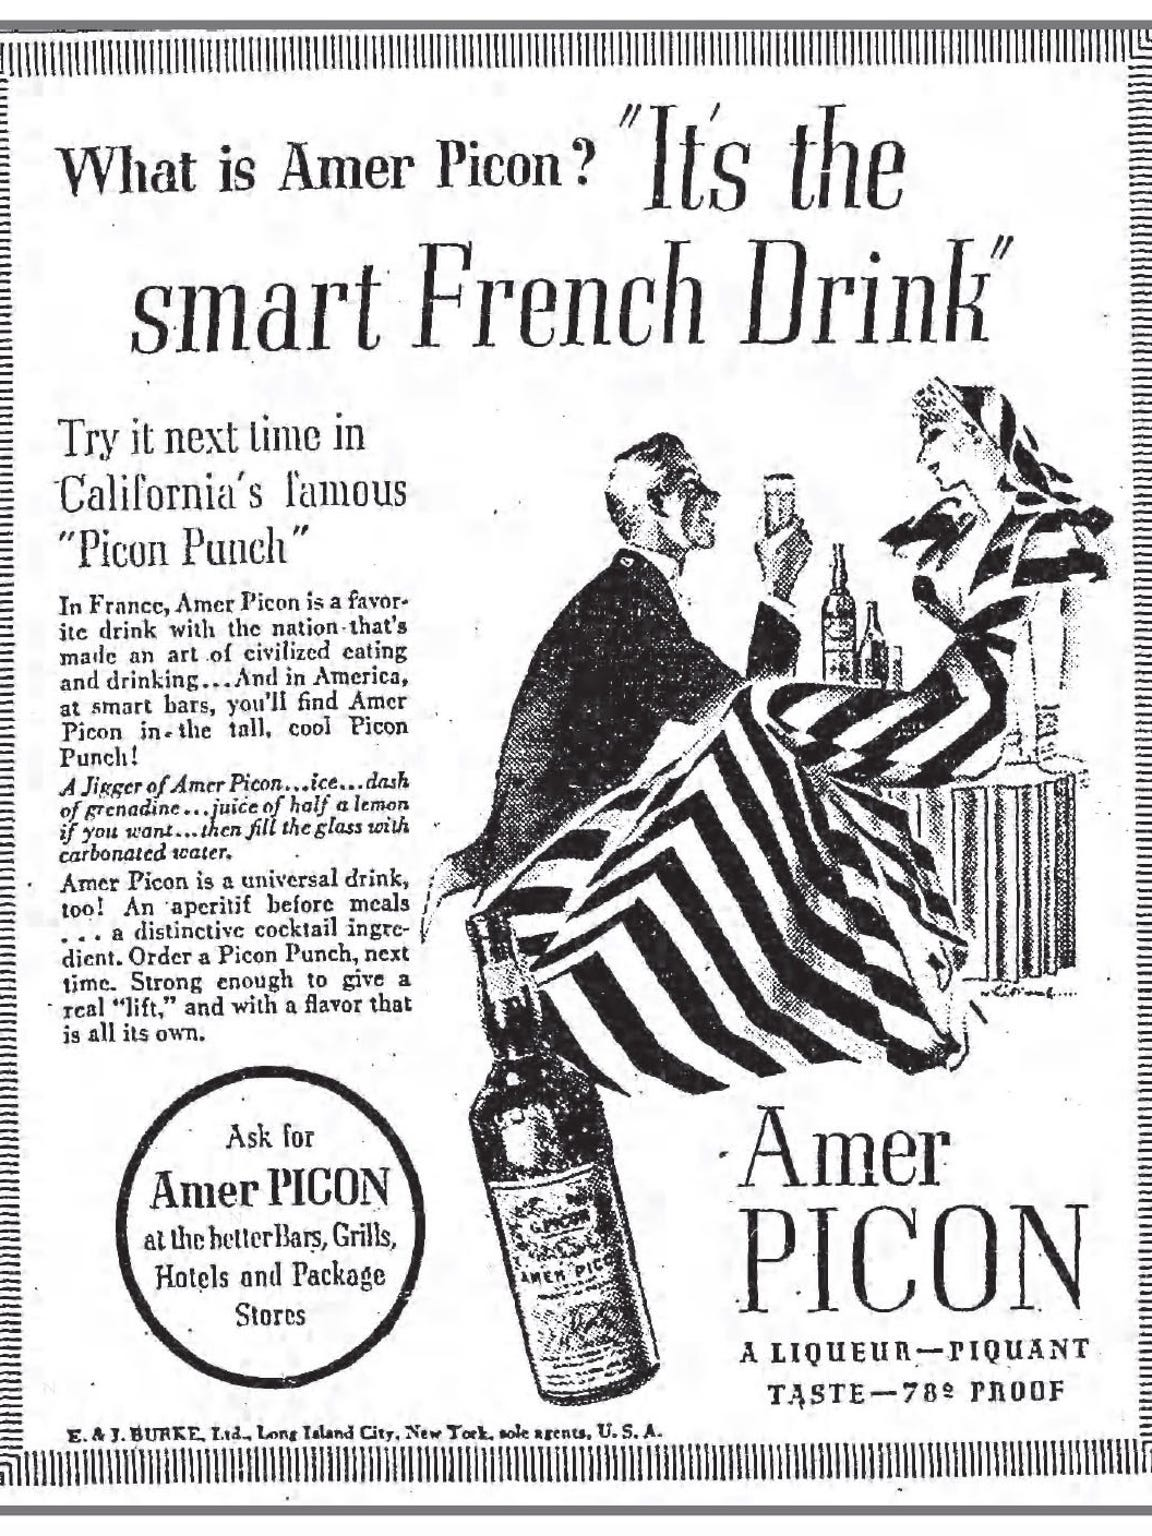 An Amer Picon advertisement in a 1936 edition of the